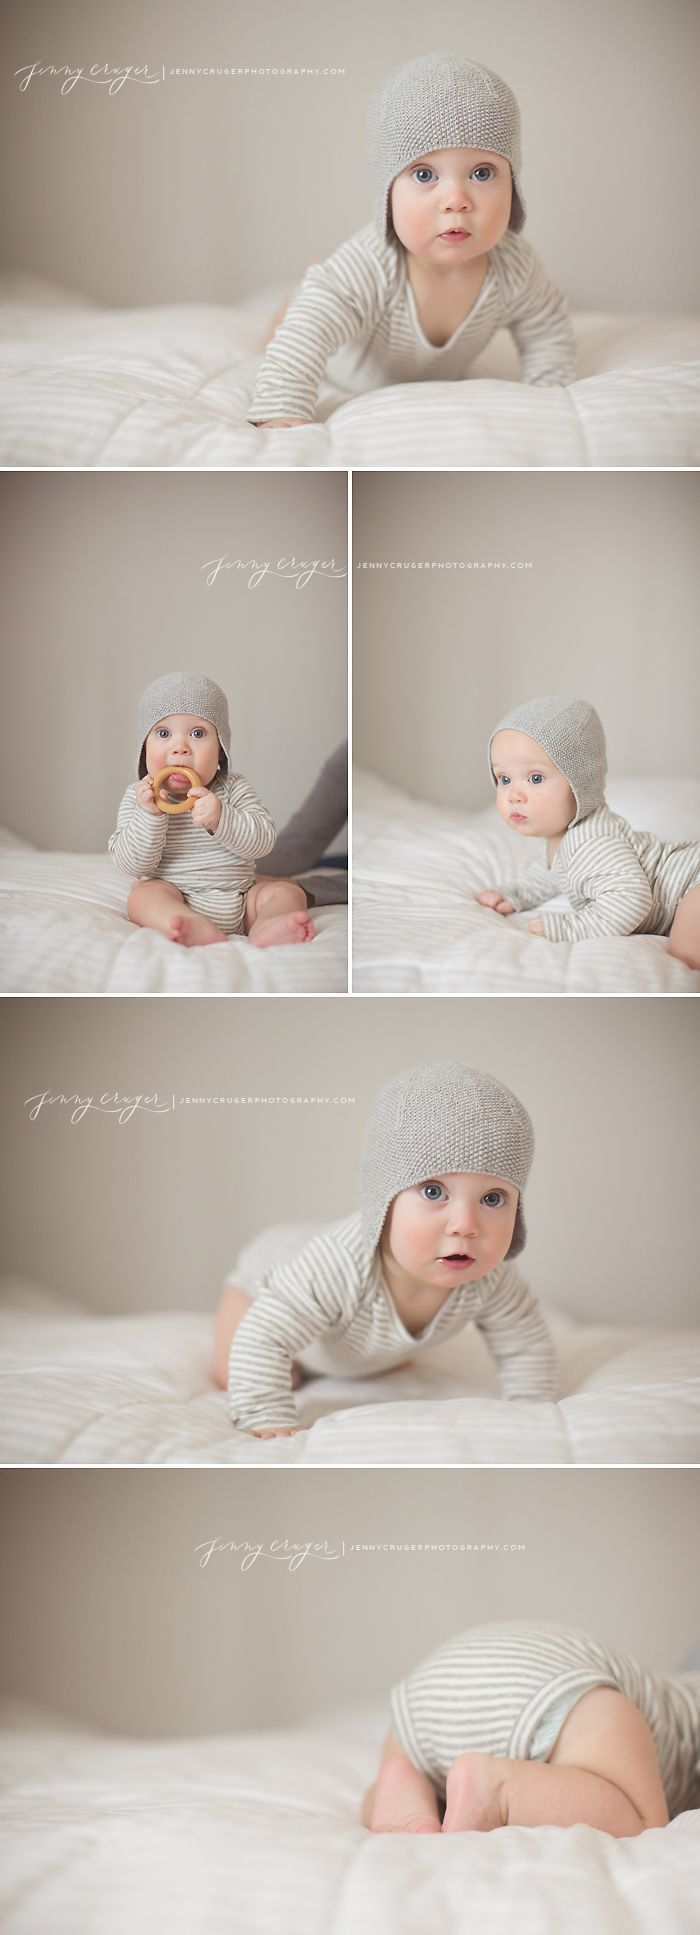 Jenny Cruger Photography | Nashville Baby Photographer